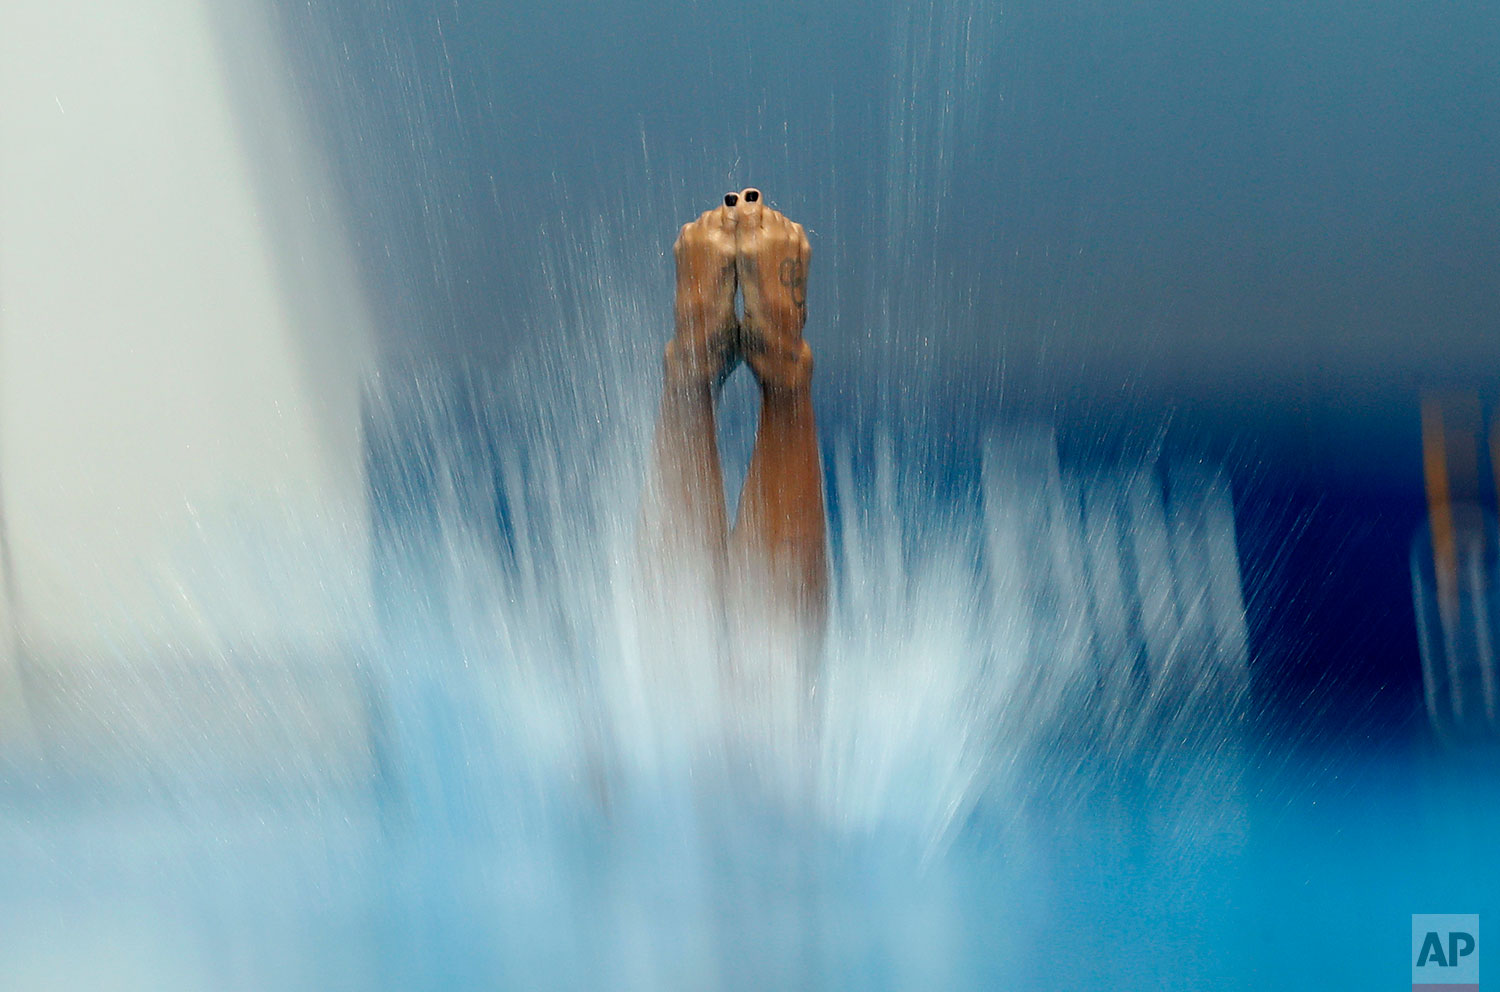 Canada's Jennifer Abel performs her routine in the women's 3m springboard diving event at the World Swimming Championships in Gwangju, South Korea, Thursday, July 18, 2019. (AP Photo/Lee Jin-man )